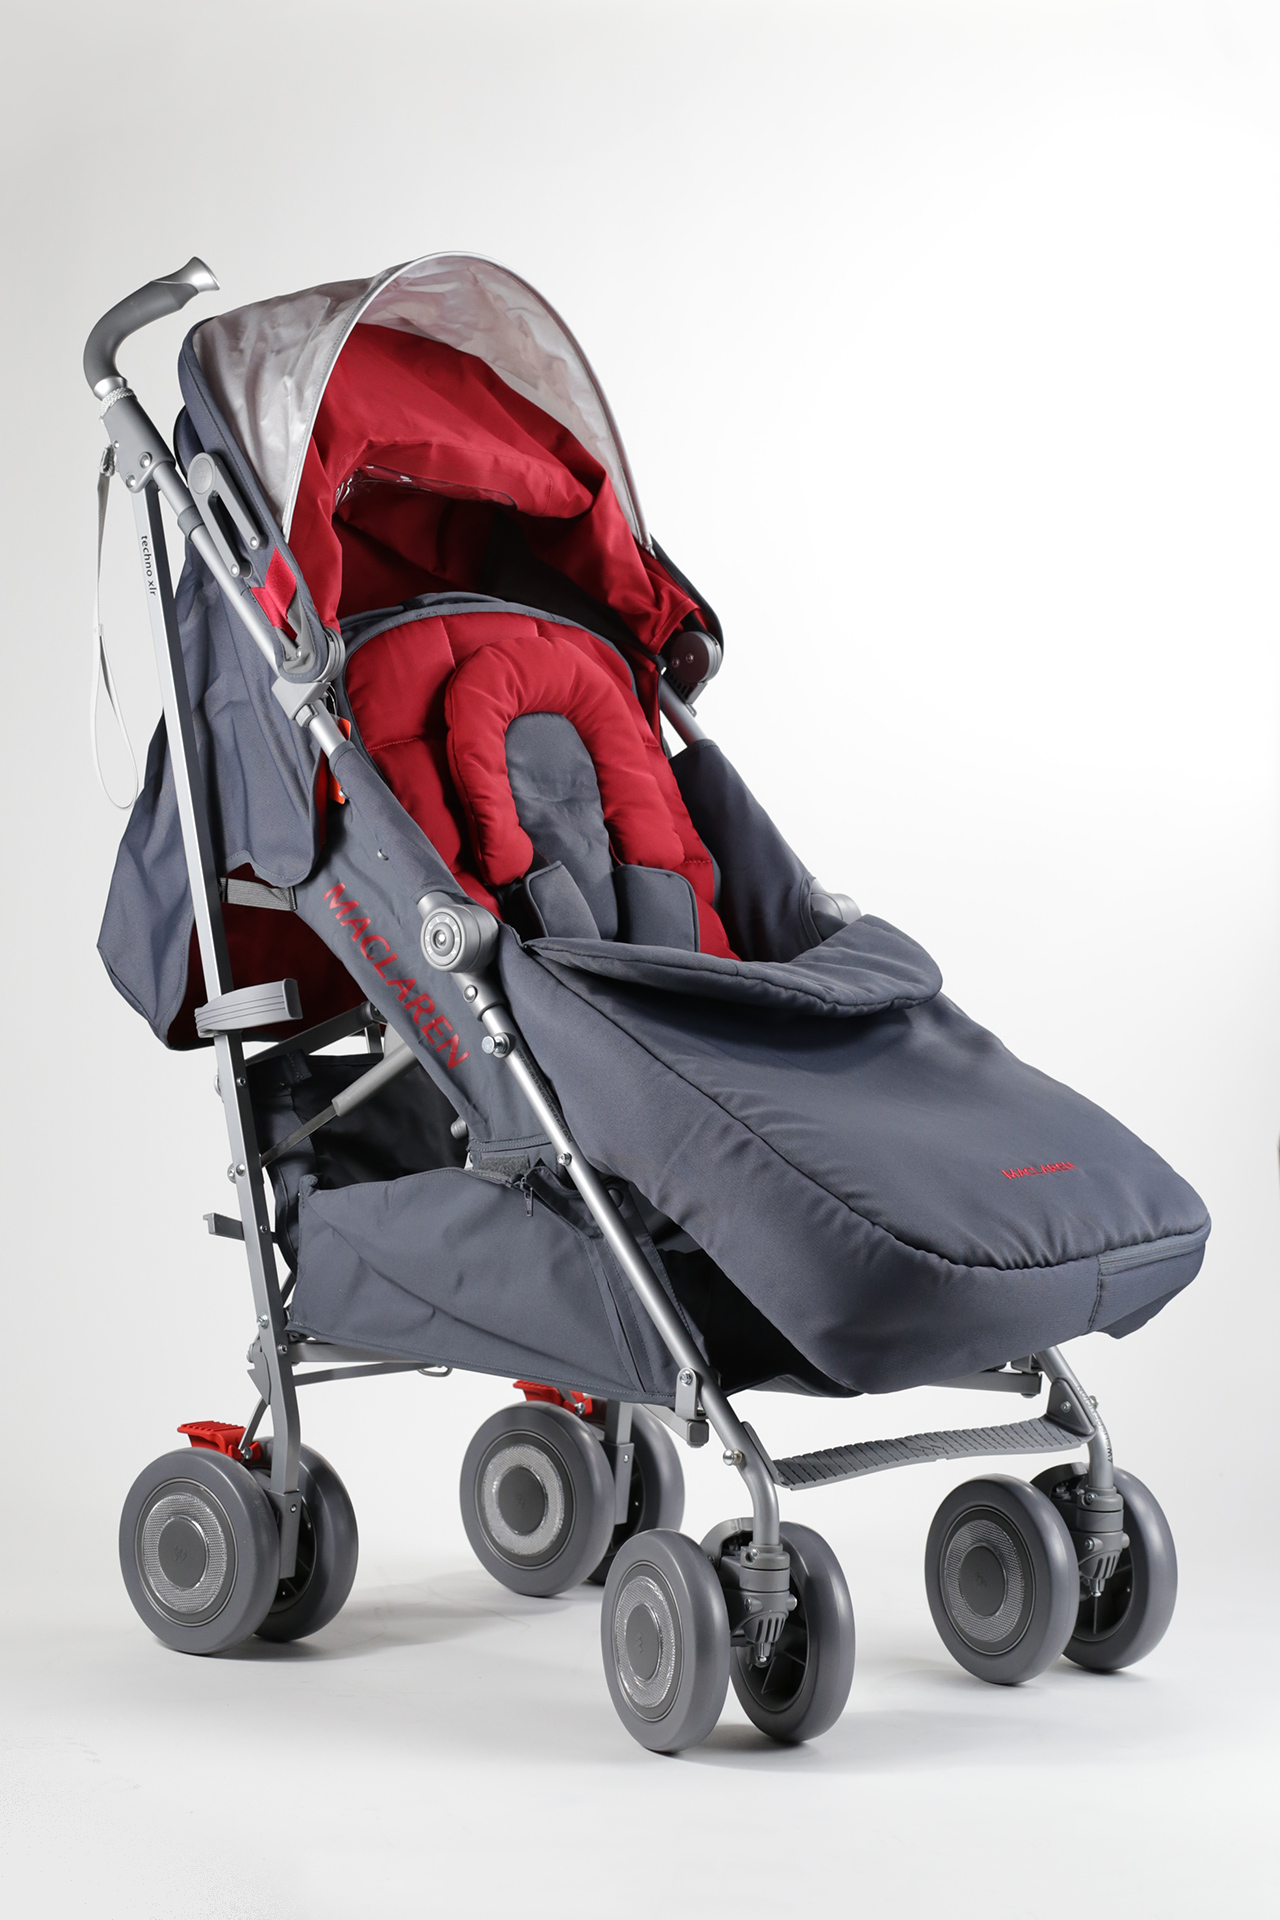 adc2d962c MacLaren Buggy TECHNO XLR 2015 Scarlet - Buy at kidsroom | Strollers